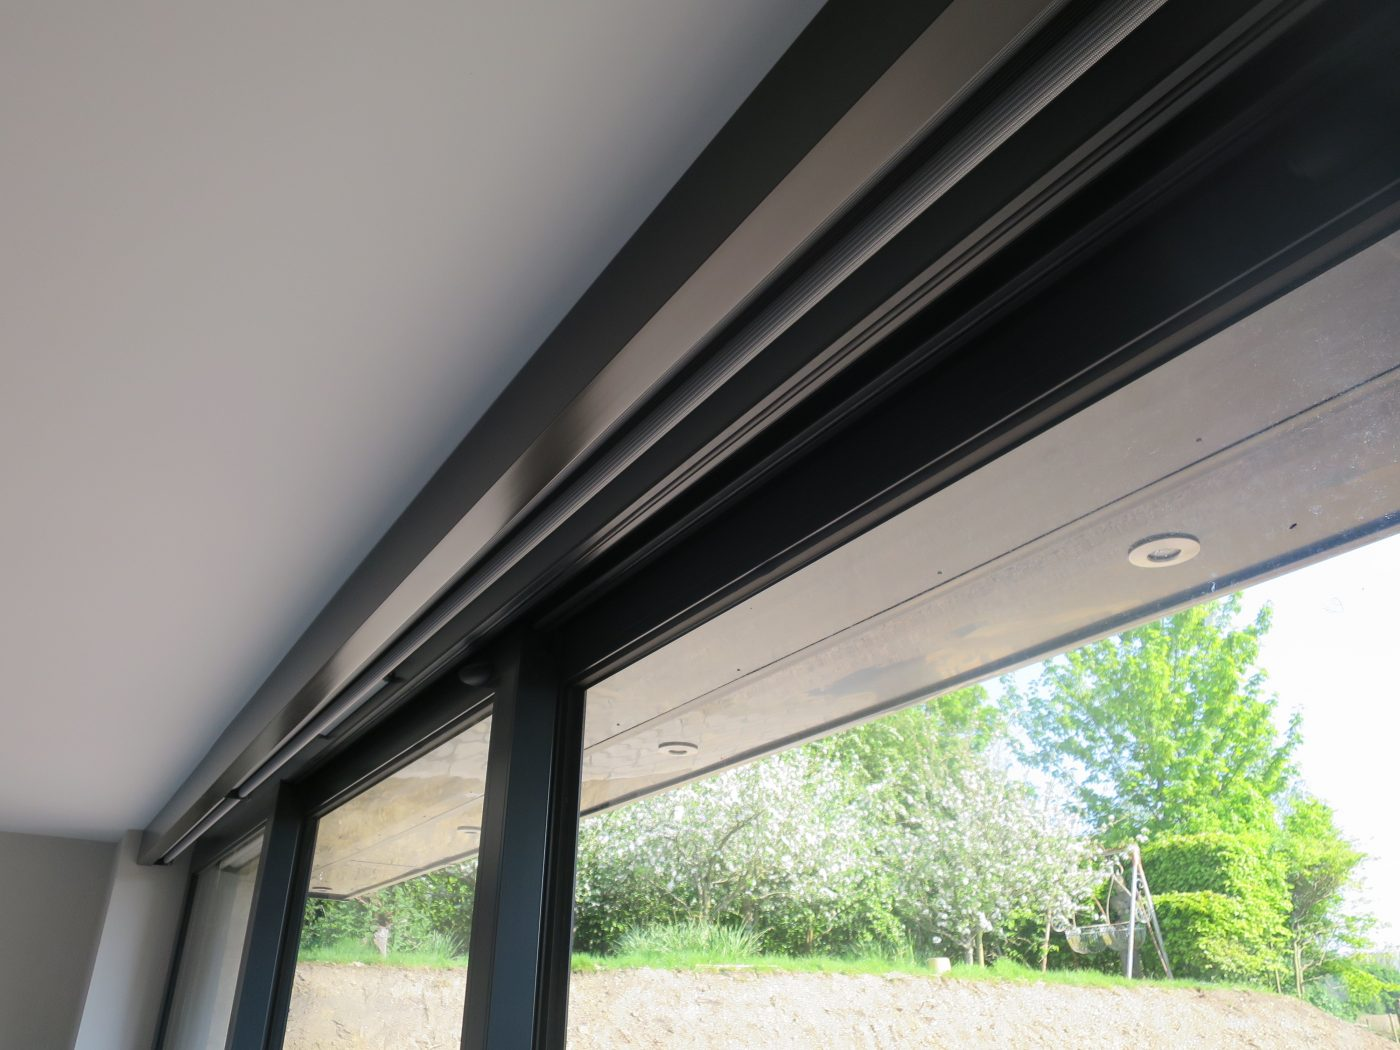 Electric Blind Mounts And Fascias The Electric Blind